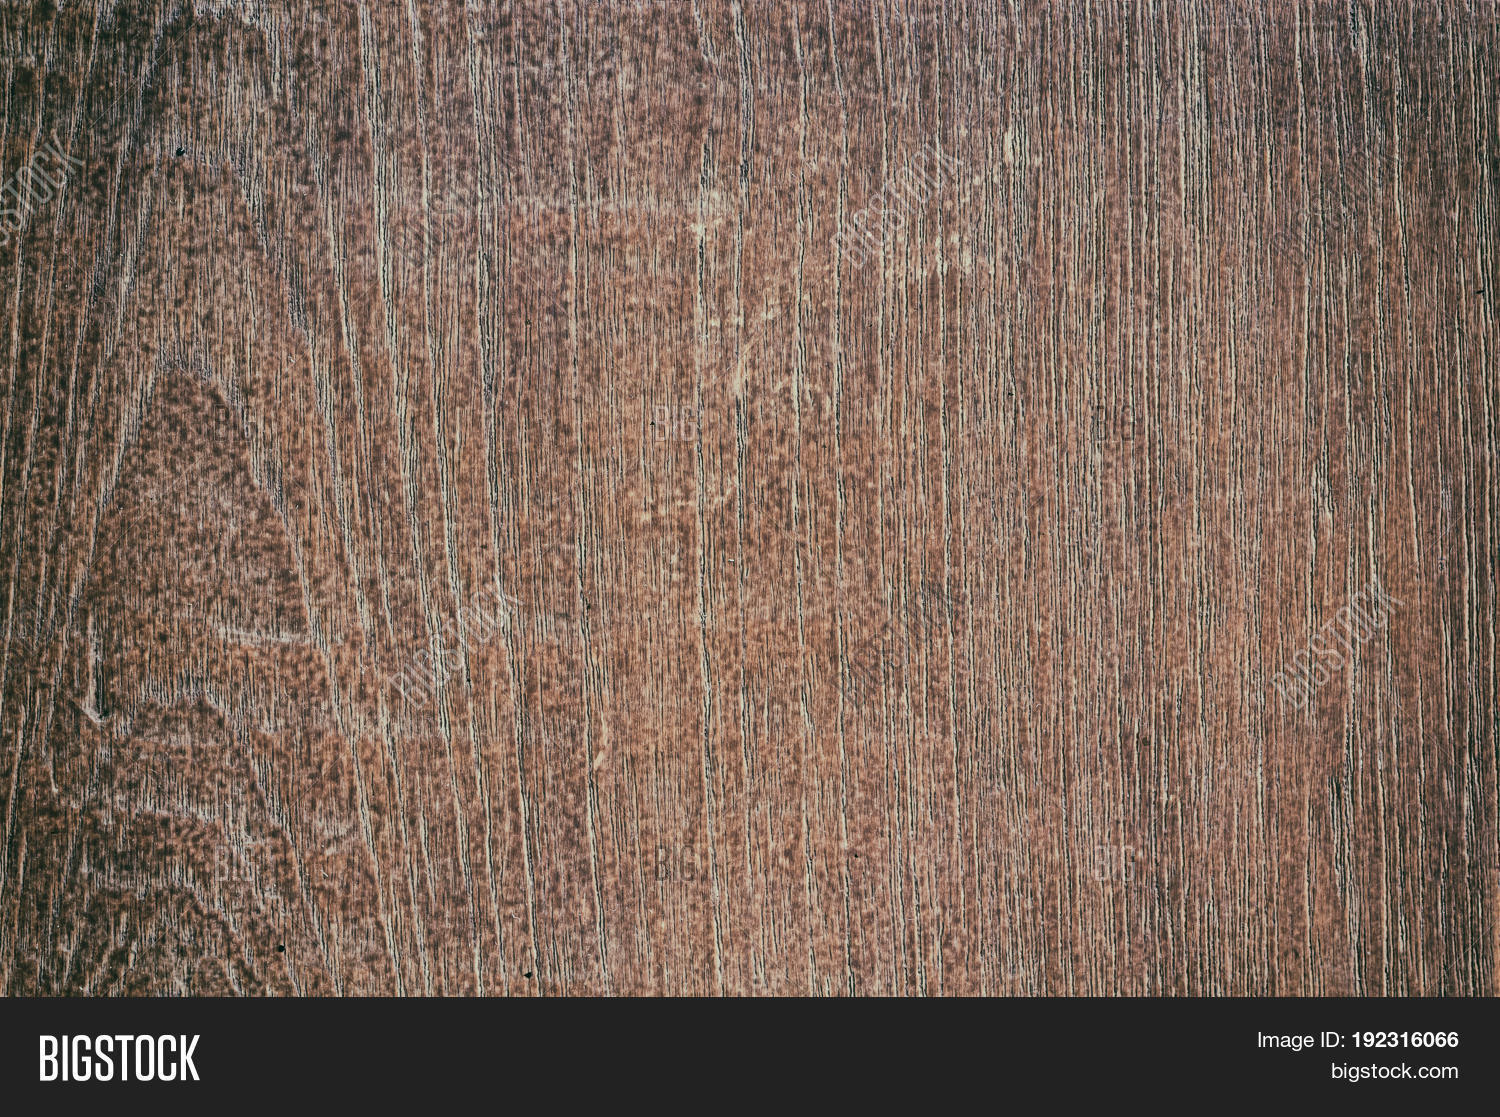 Rustic wood table texture - Wood Table Texture Background Rustic Wood Table Made Of Old Wood Table Texture Rustic